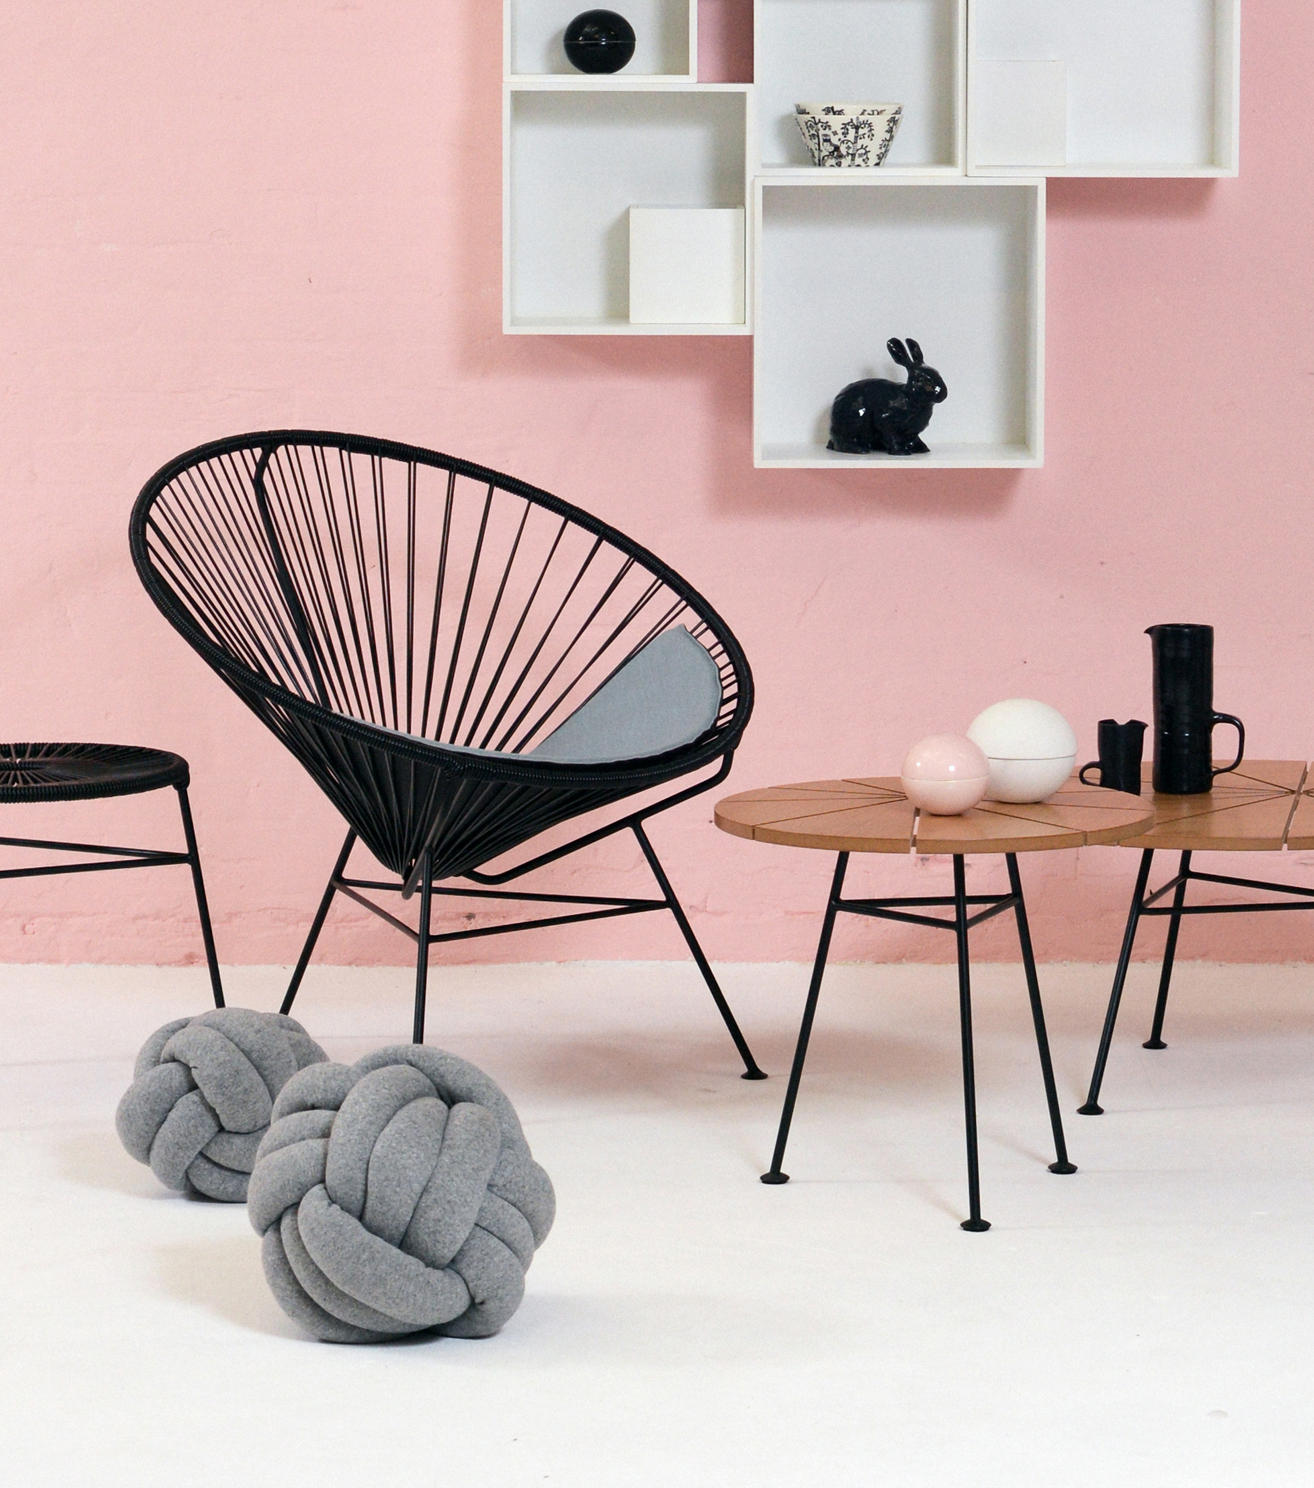 acapulco chair garden armchairs from ok design architonic. Black Bedroom Furniture Sets. Home Design Ideas